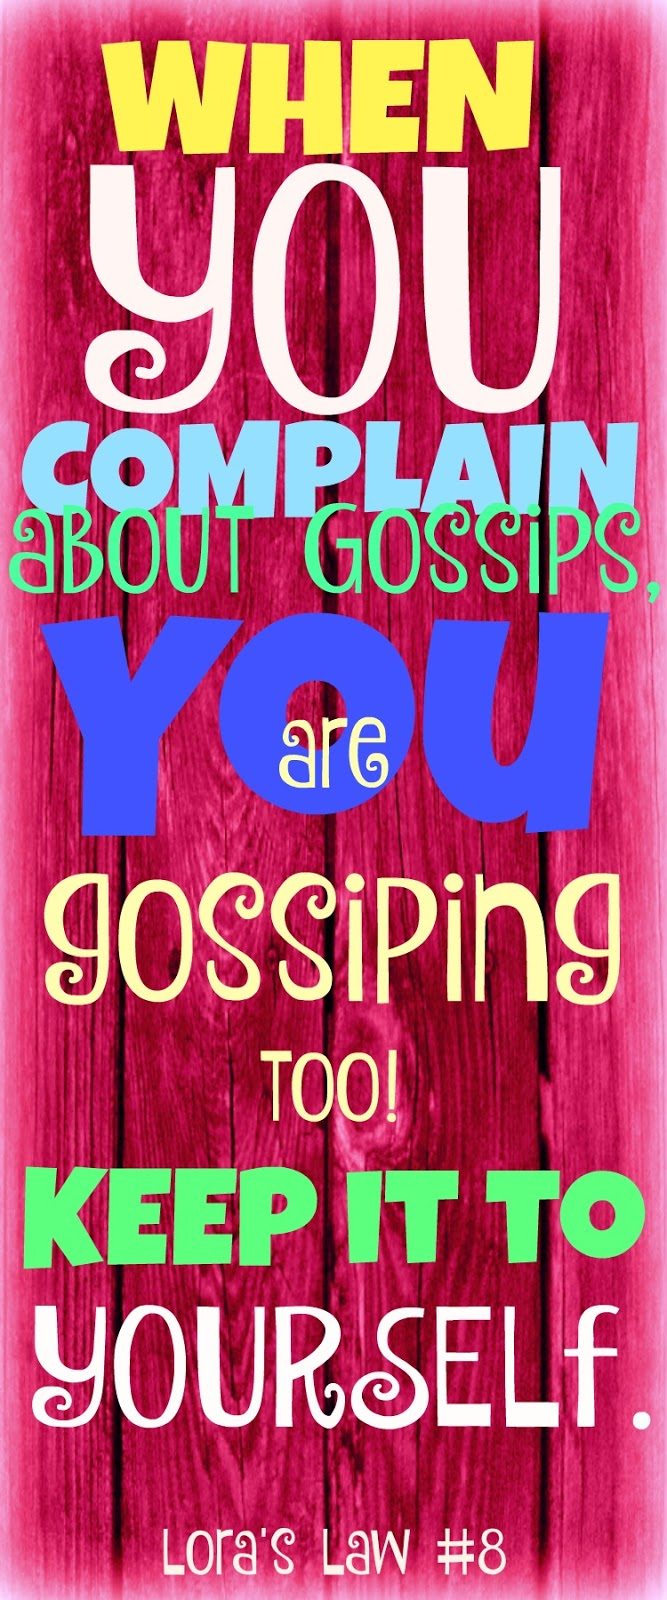 When you complain about gossips, you are gossiping too. Keep it to yourself. Lora's Law #8